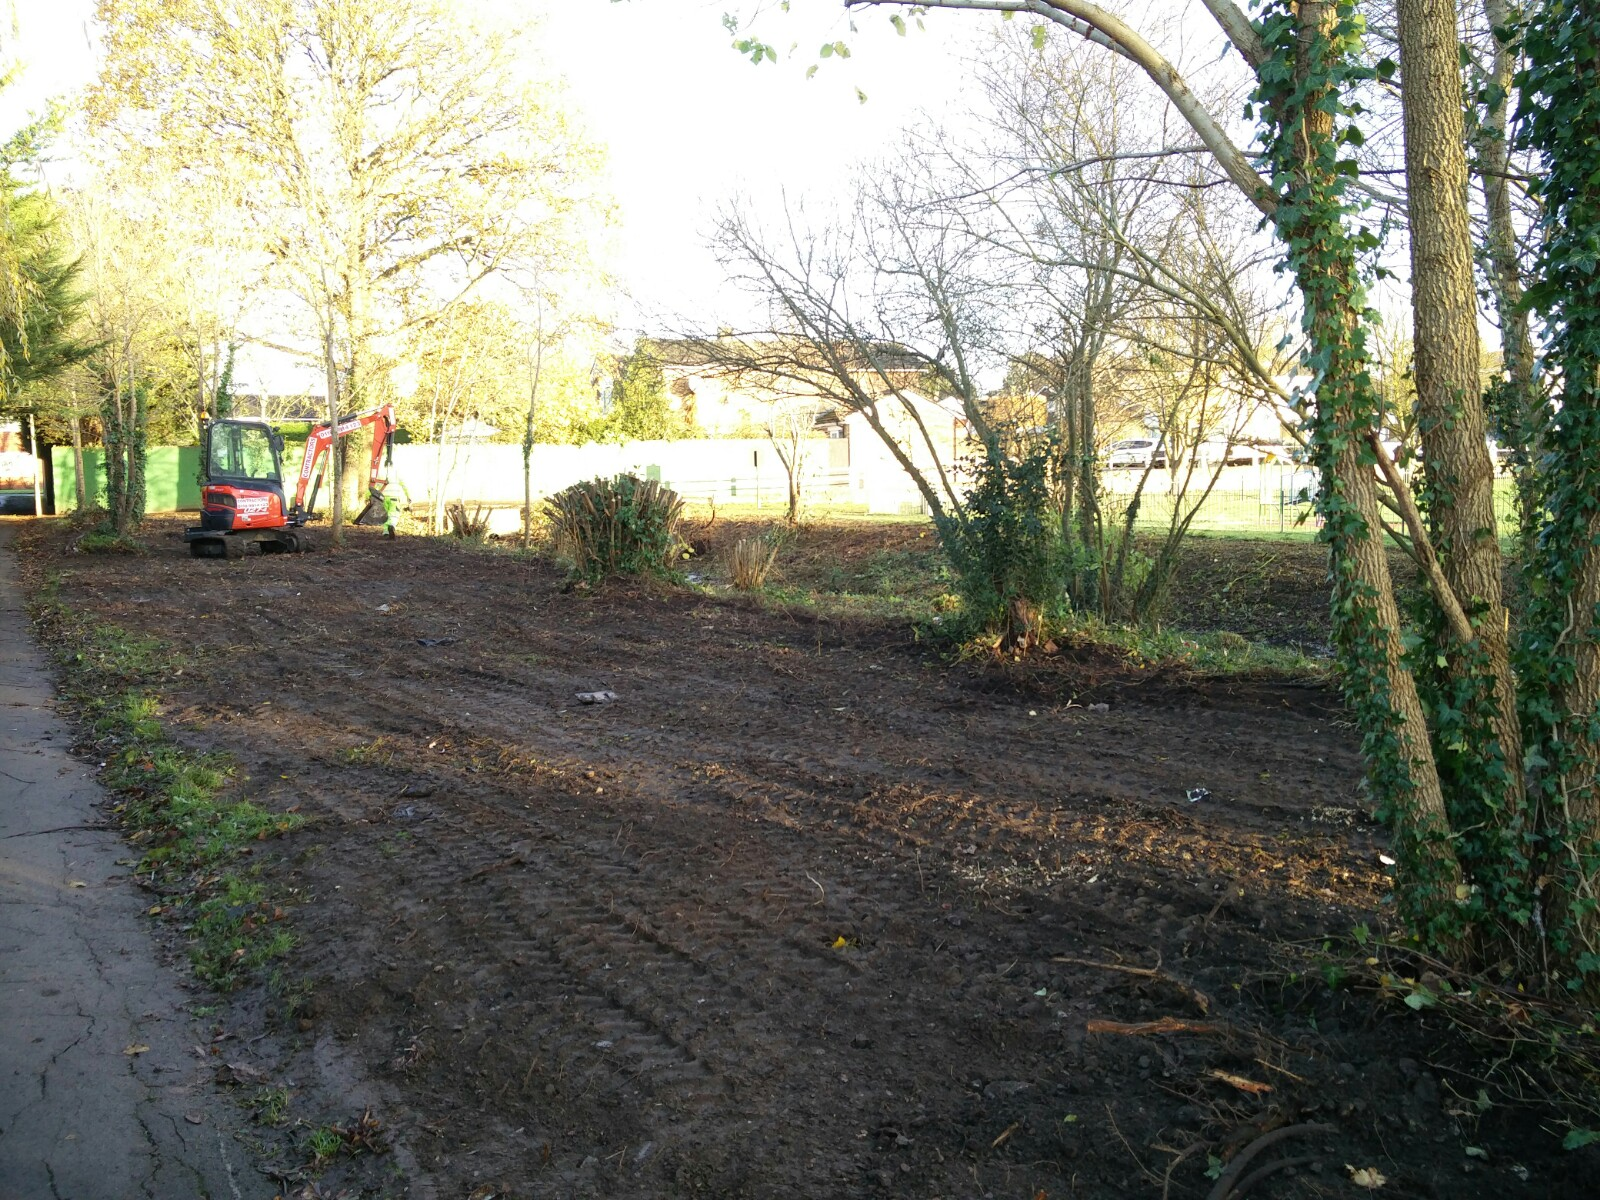 Wild play area after clearance